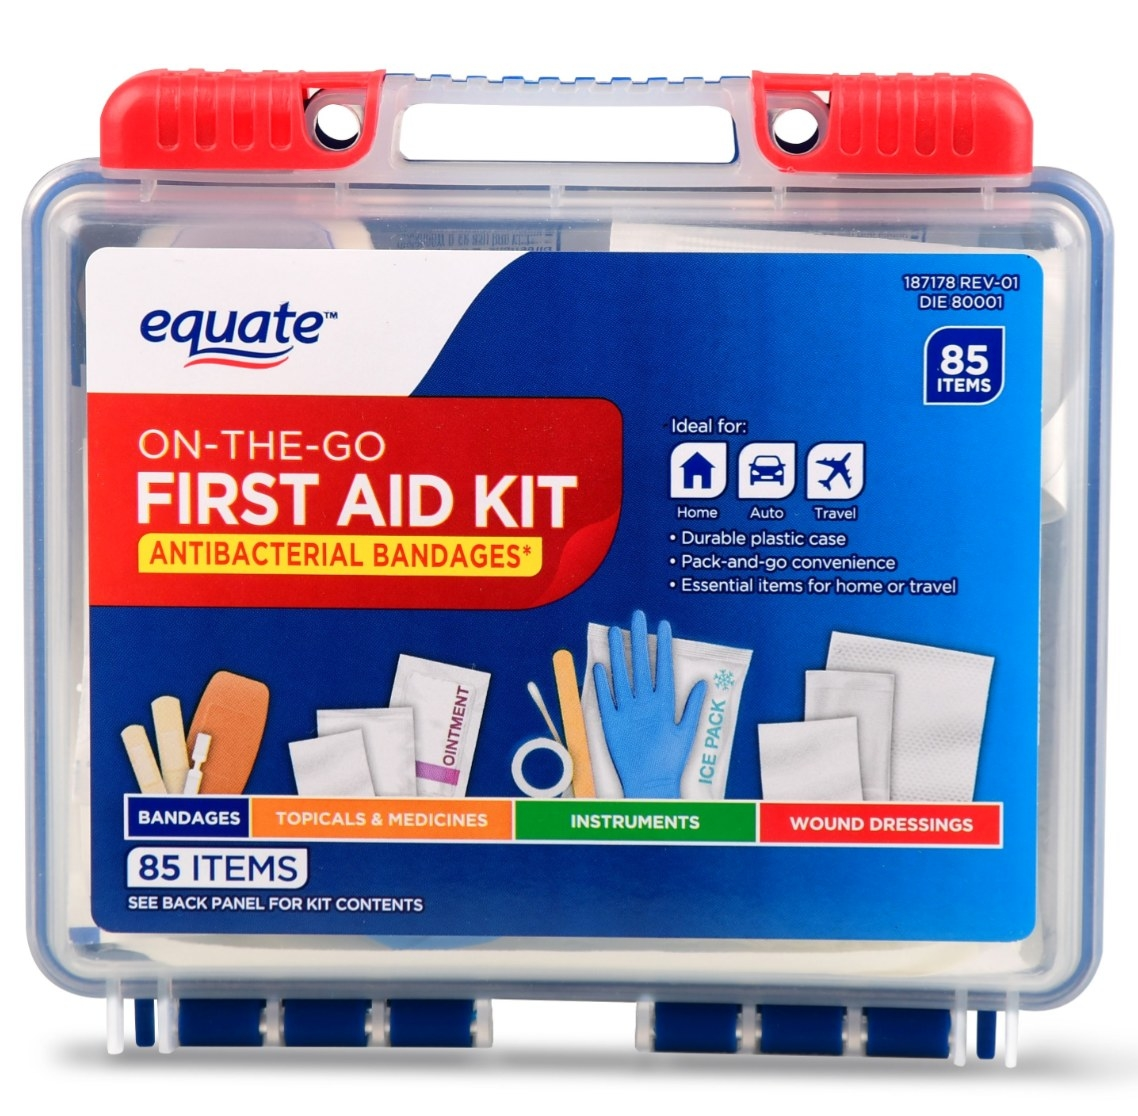 The first aid kit in its plastic packaging